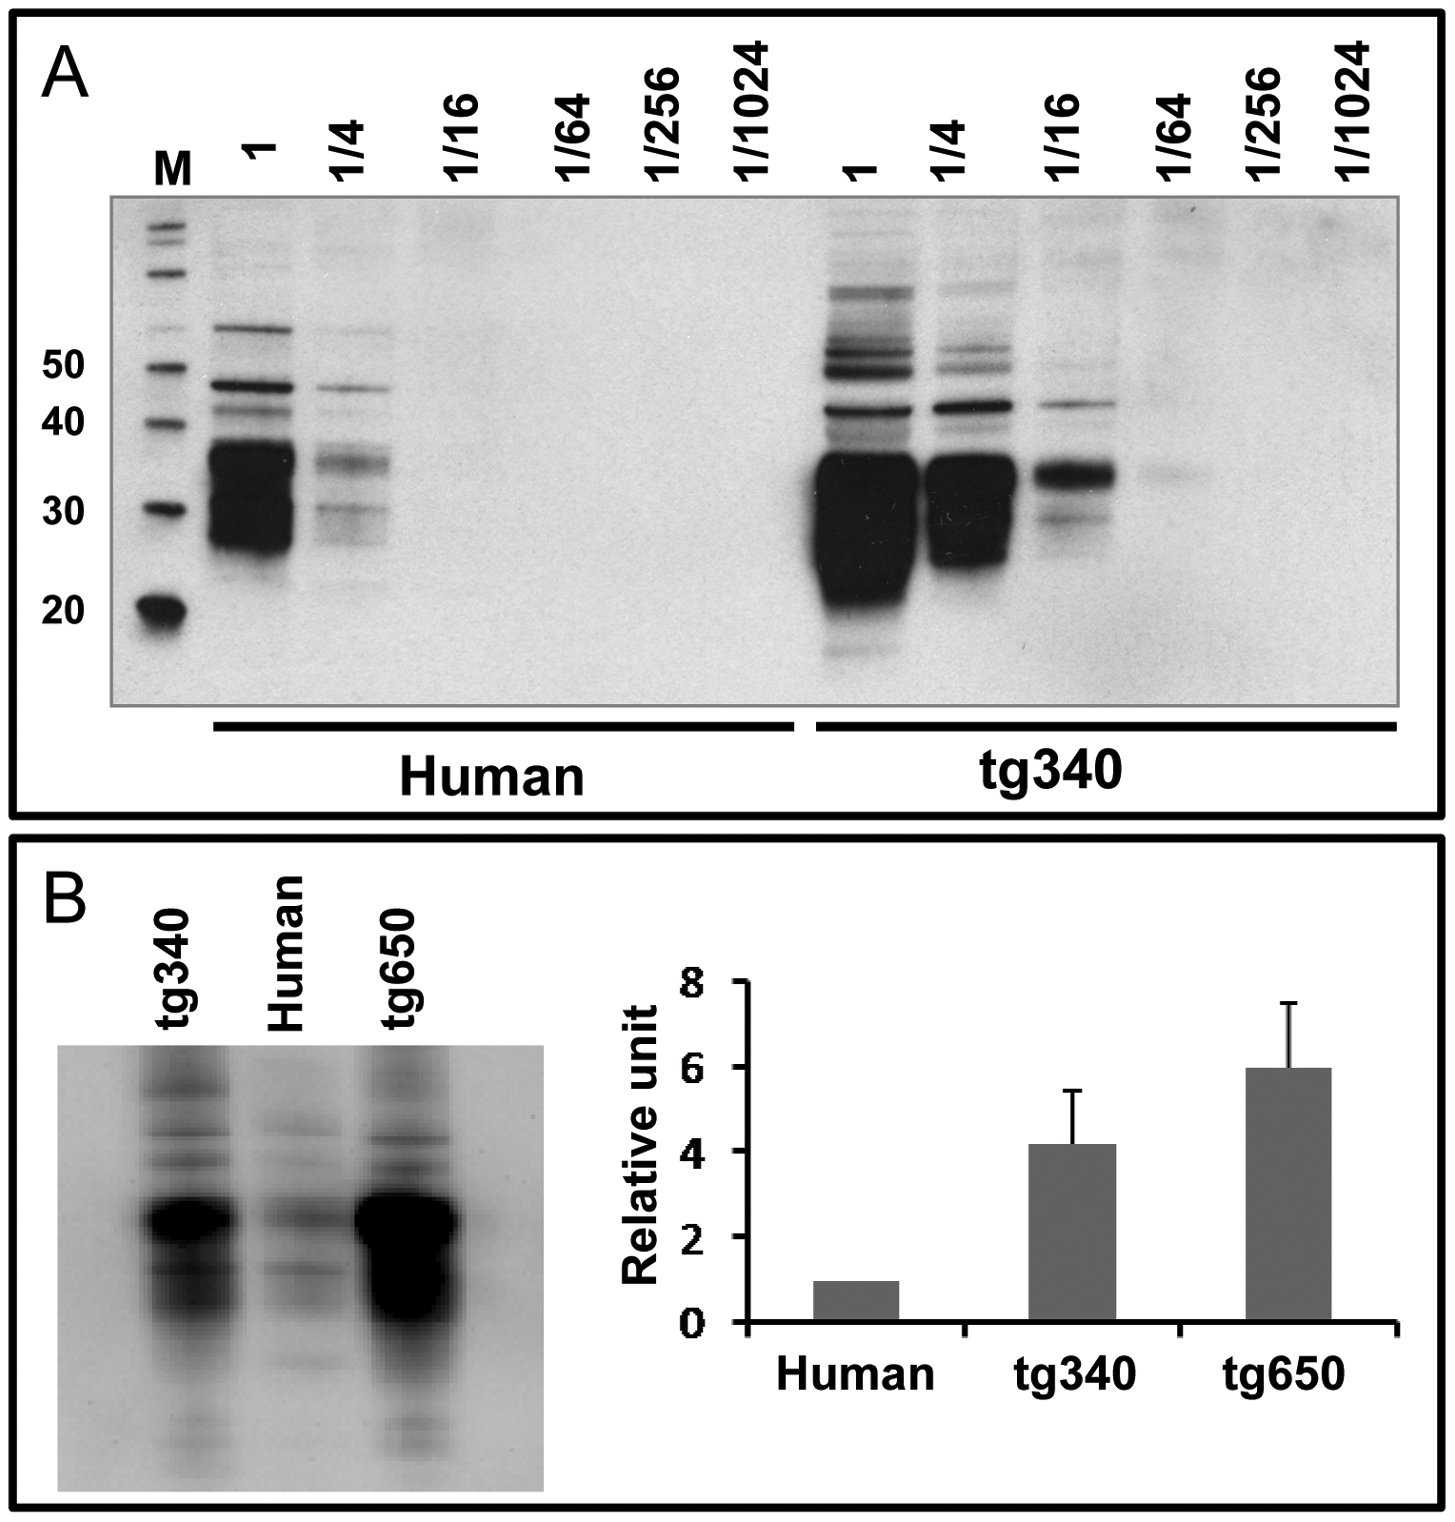 Brain PrP<sup>C</sup> expression in homozygous tg340 mouse line in comparison to both tg650 mice and human brain.